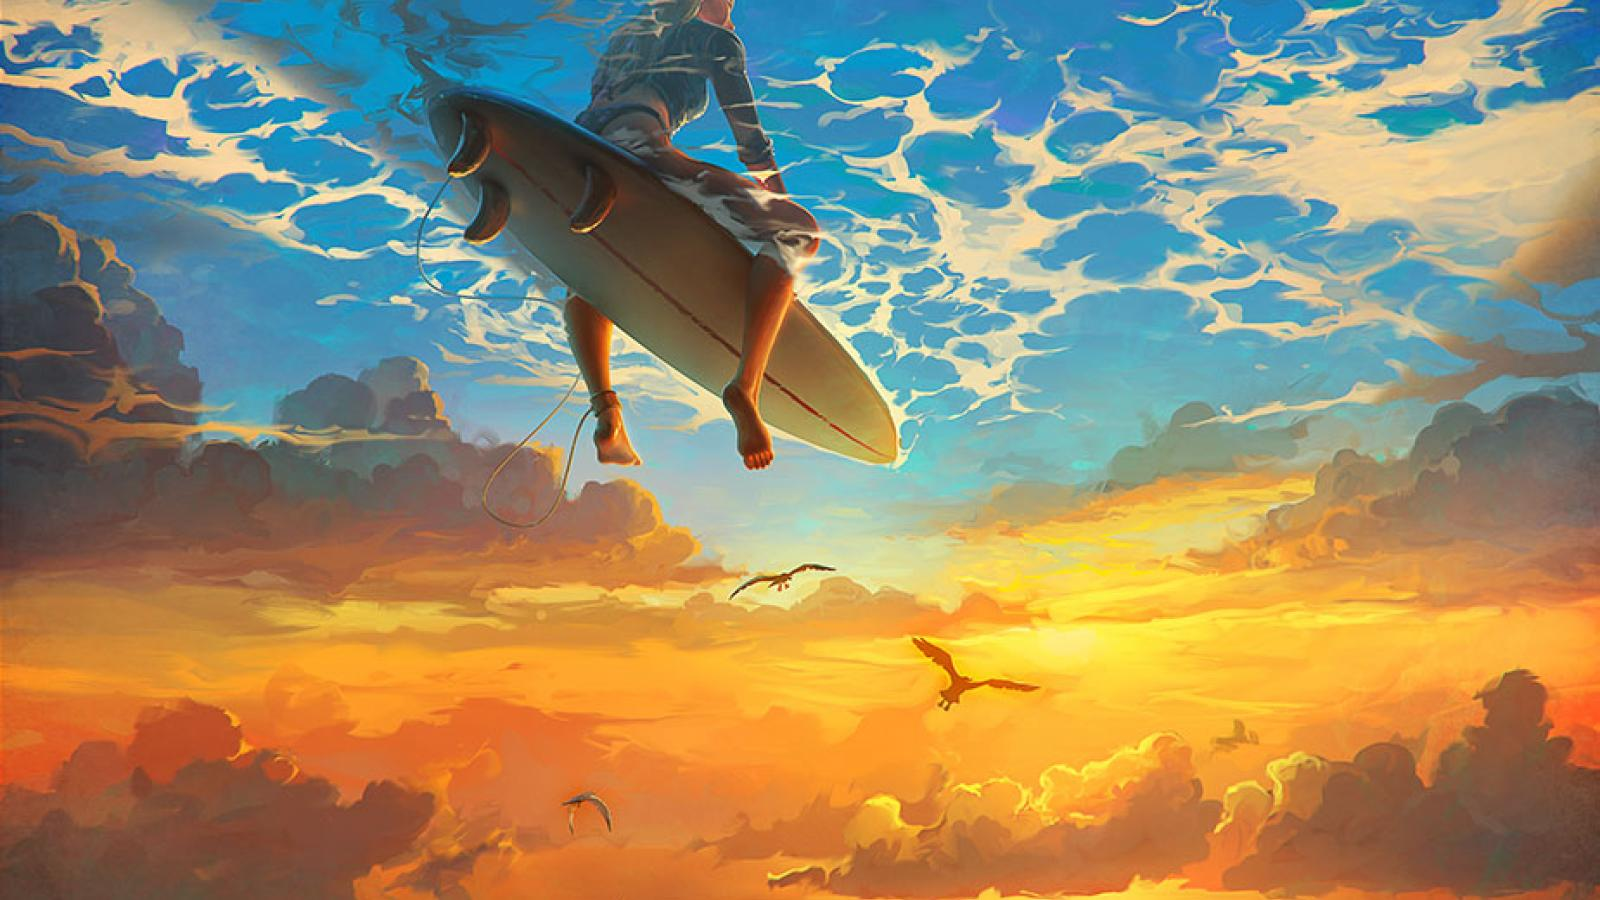 Awesome Digital Paintings by Rhads